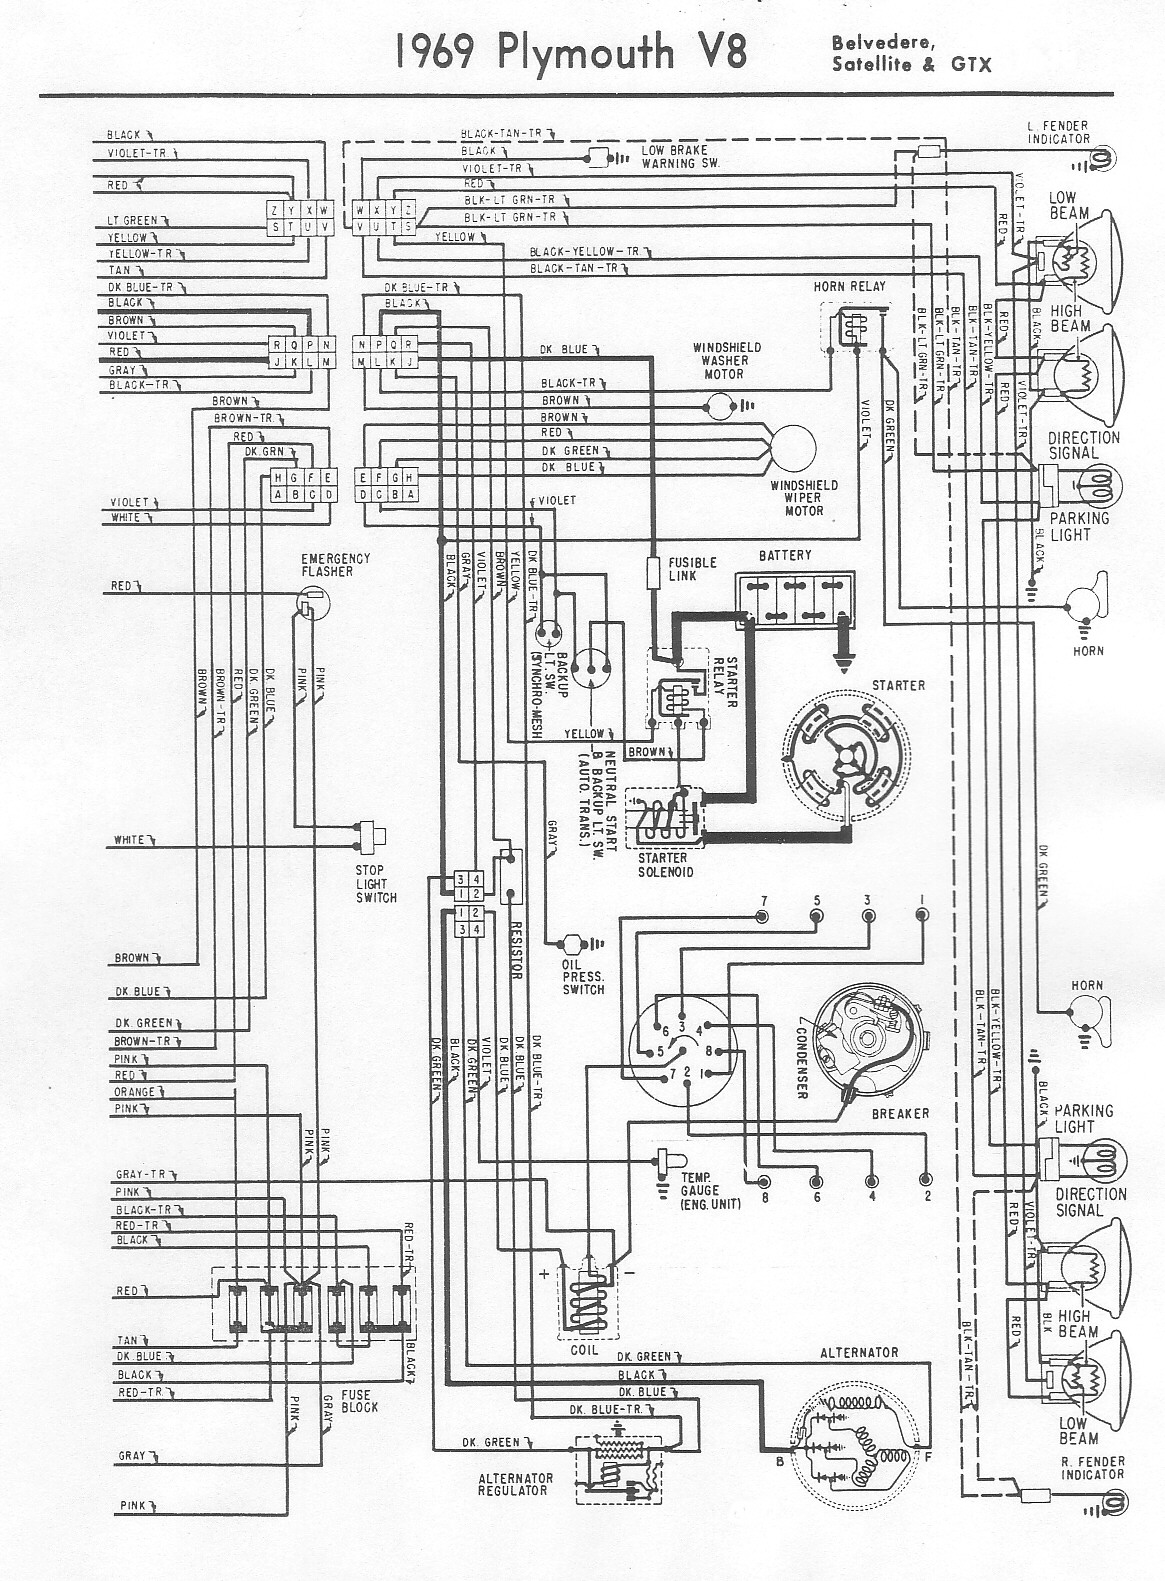 1968 Plymouth Satellite Wiring Diagram Circuit Schematic Car Dodge Charger Buick Riviera 1970 Gtx Schemes 1939 Positive Ground